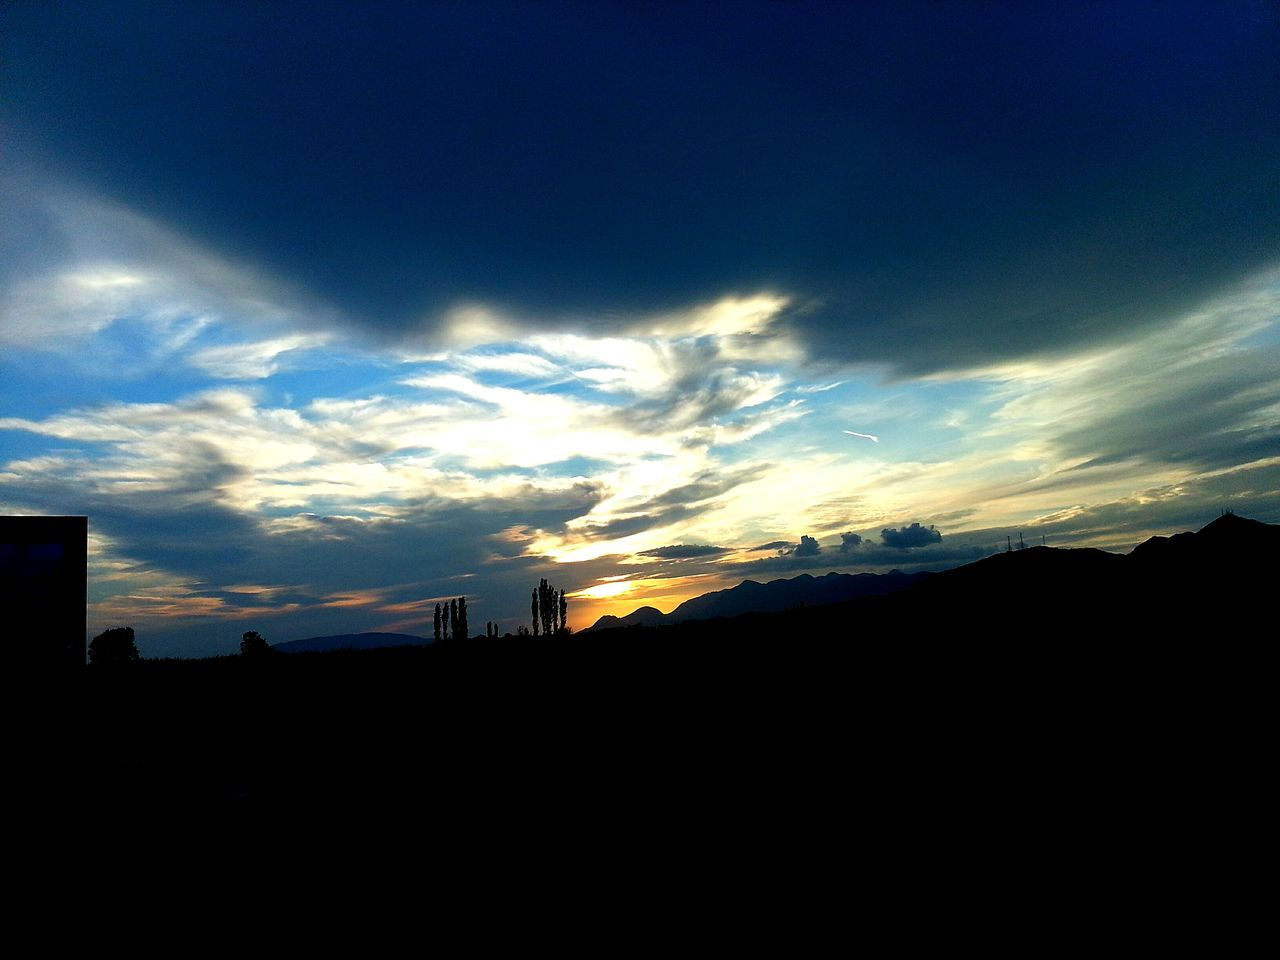 silhouette, sky, sunset, no people, cloud - sky, nature, architecture, built structure, outdoors, building exterior, beauty in nature, day